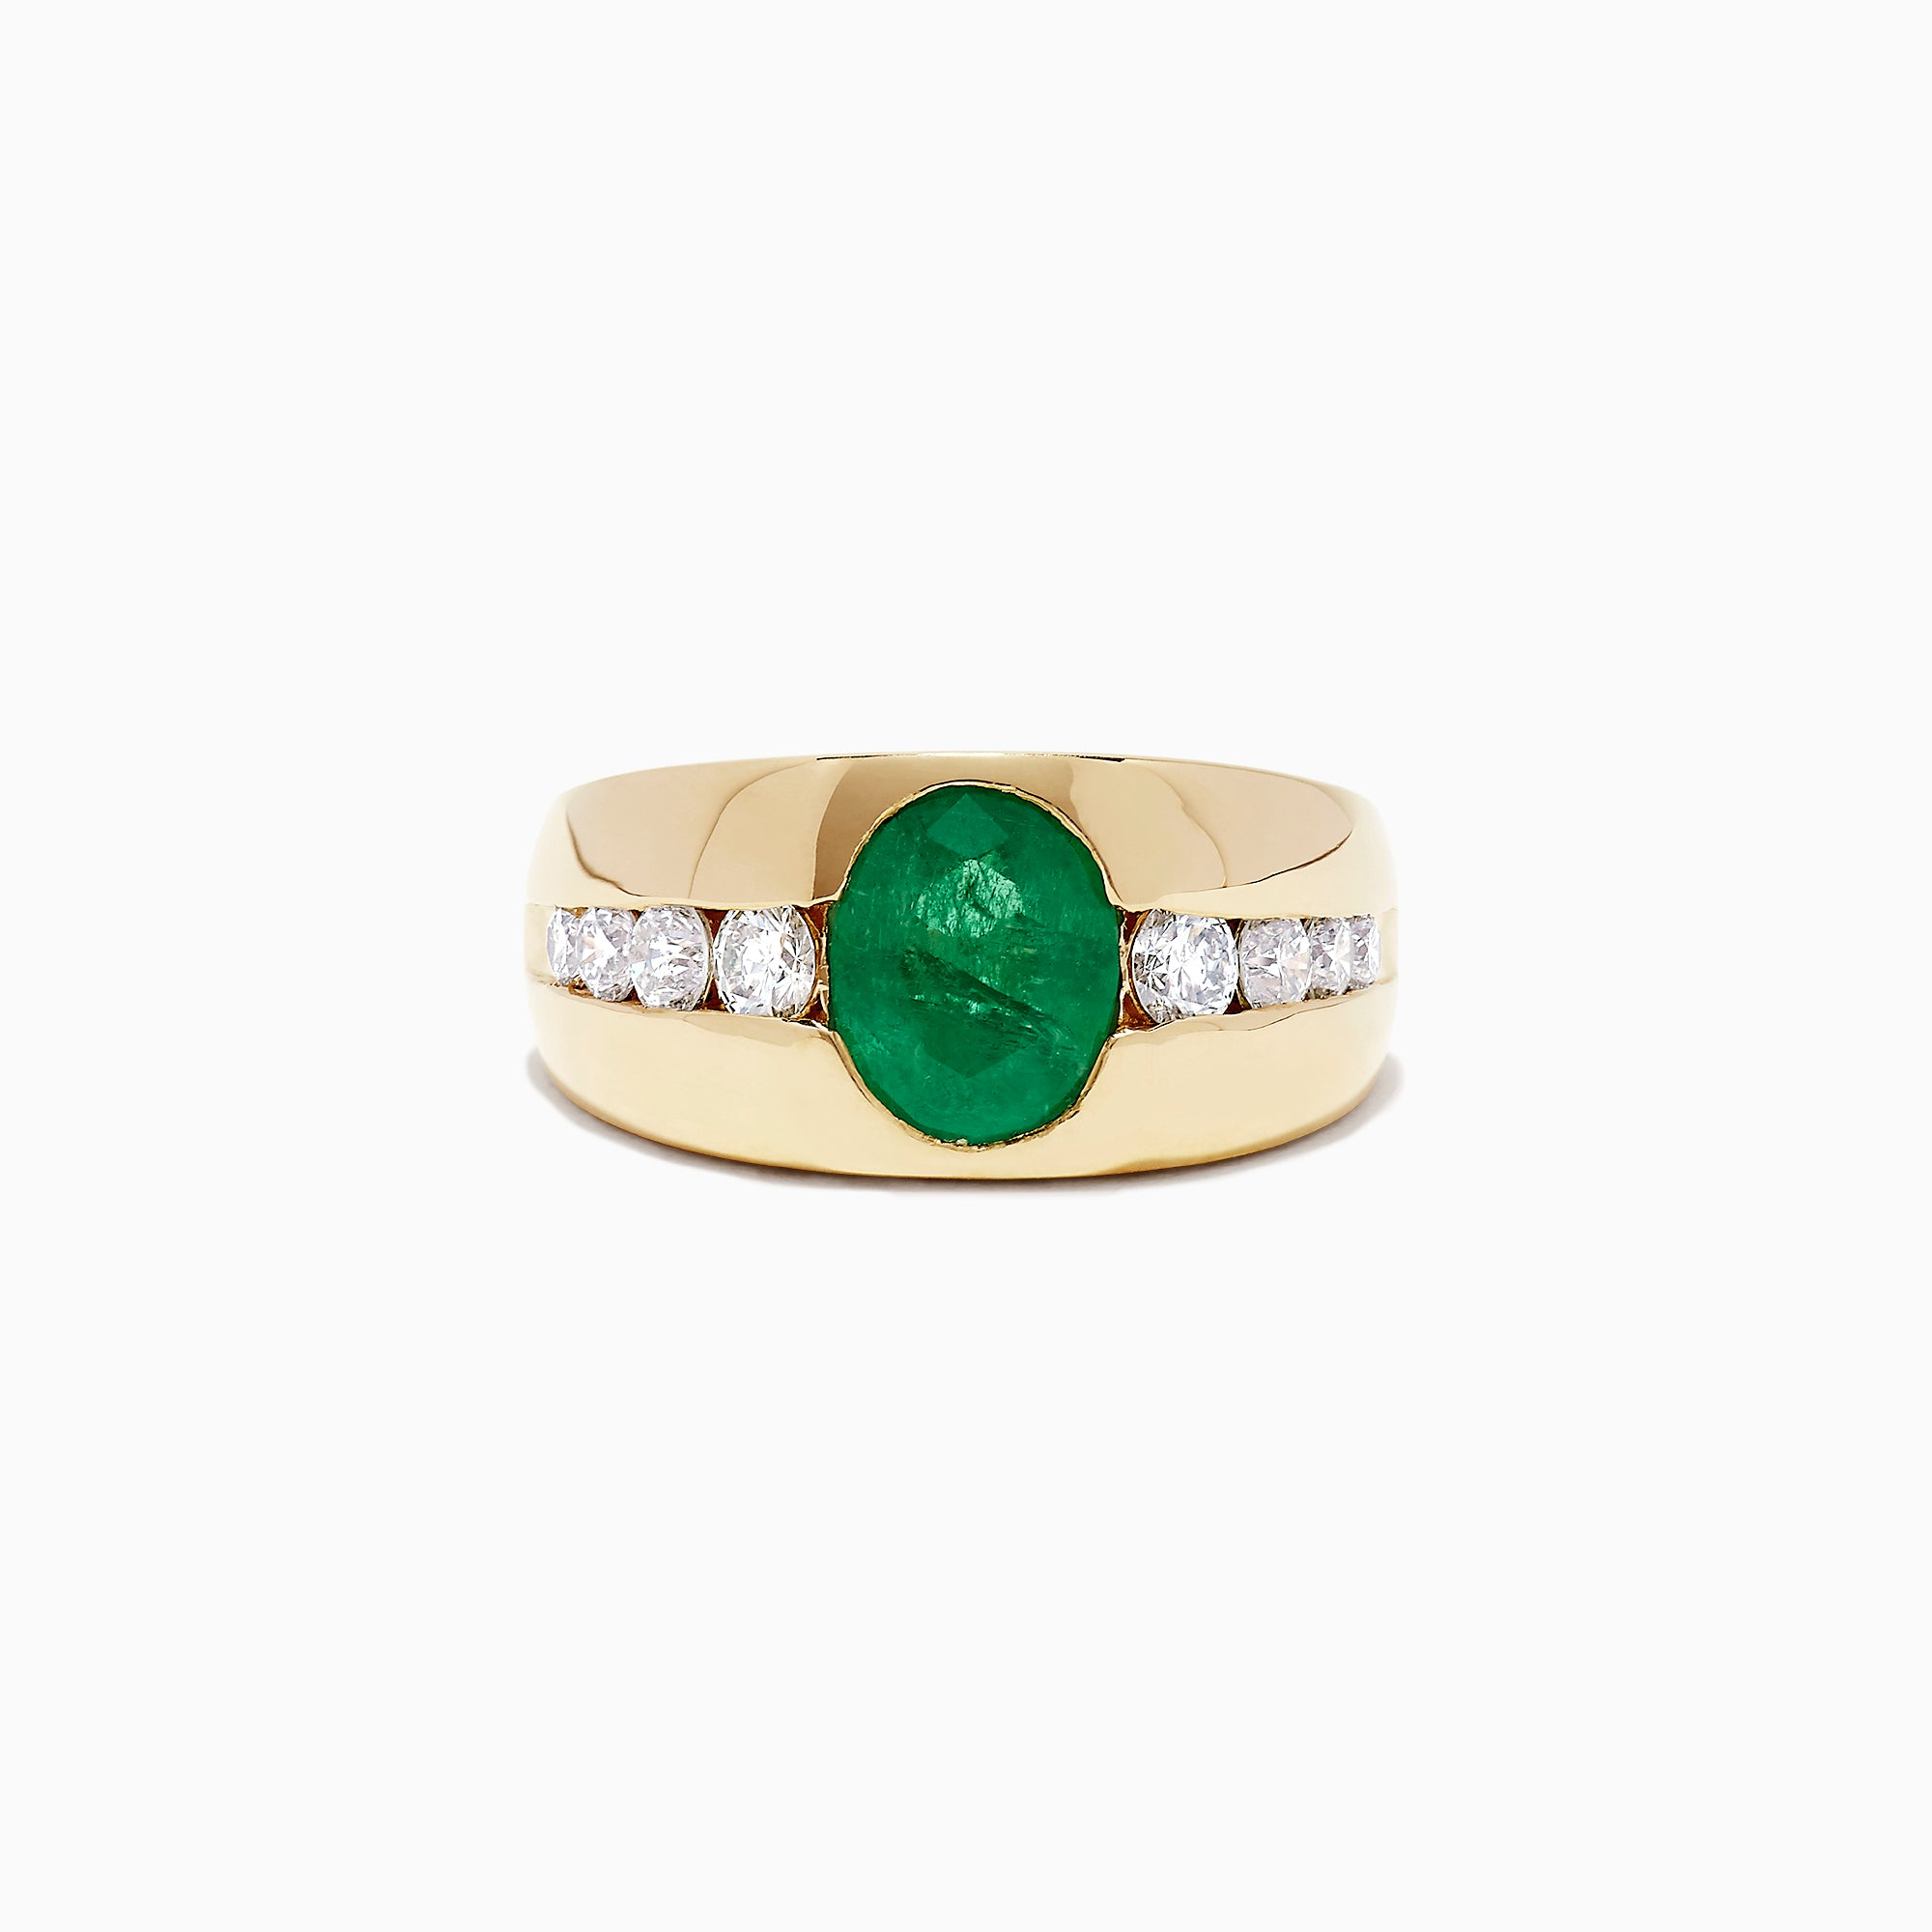 Effy Men's 14K Yellow Gold Emerald and Diamond Ring, 3.16 TCW